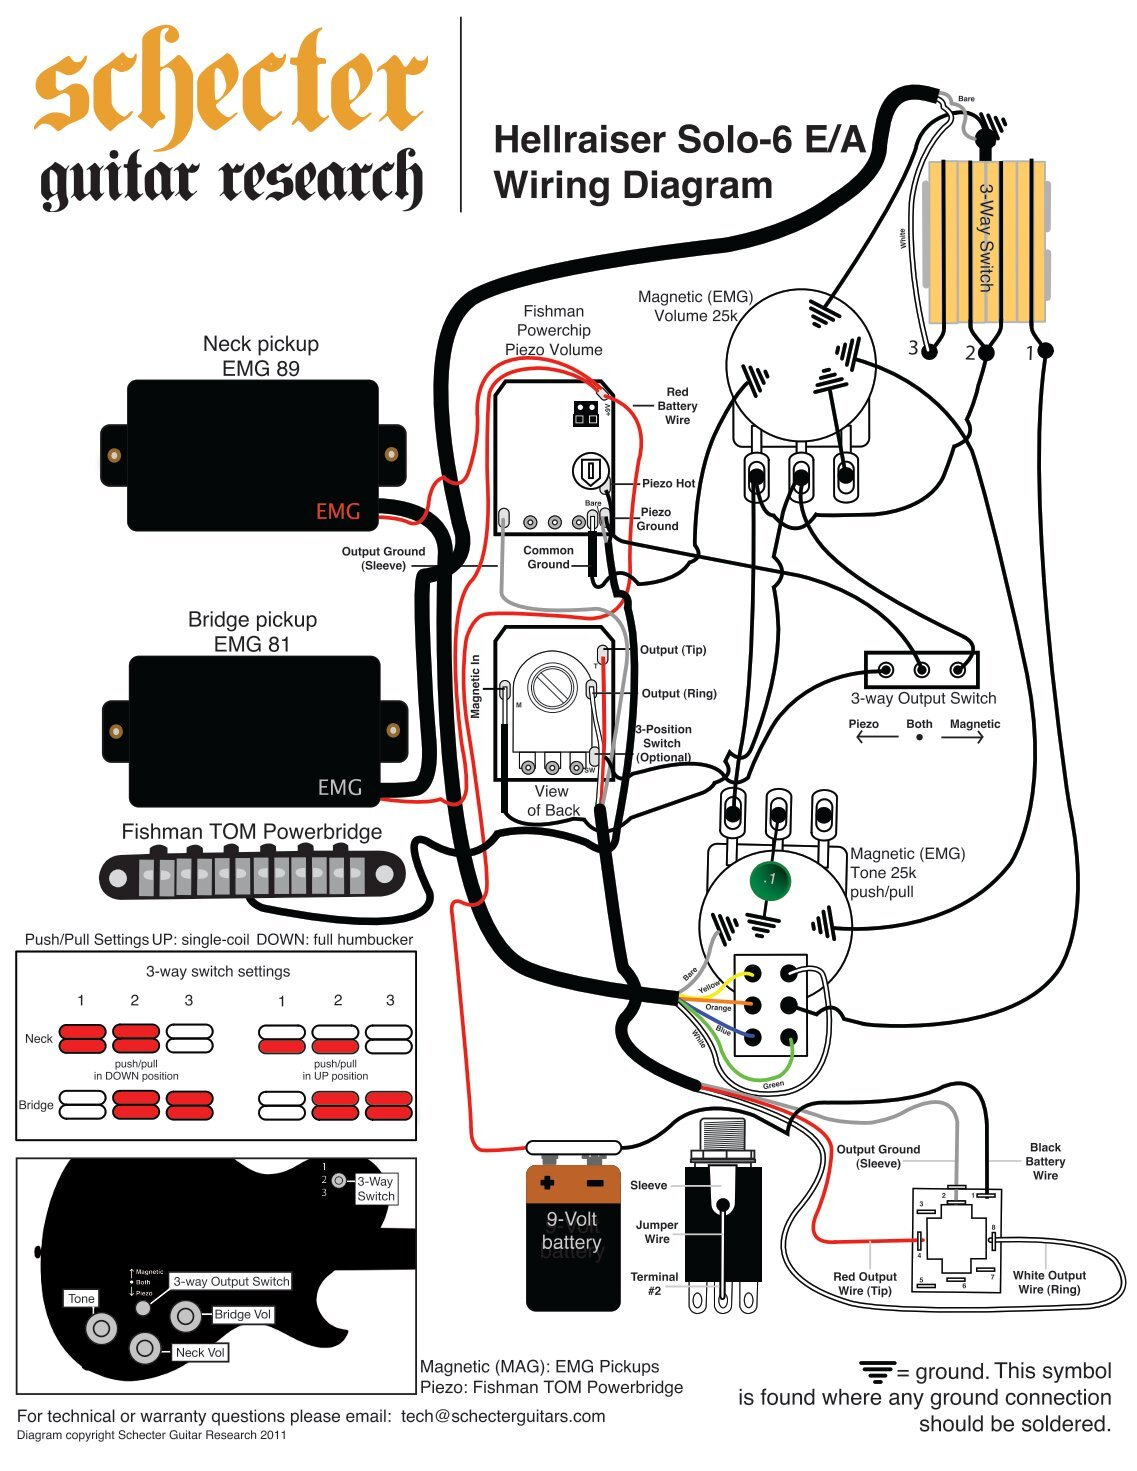 electric guitar wiring diagram one pickup what color is your parachute flower for schecter